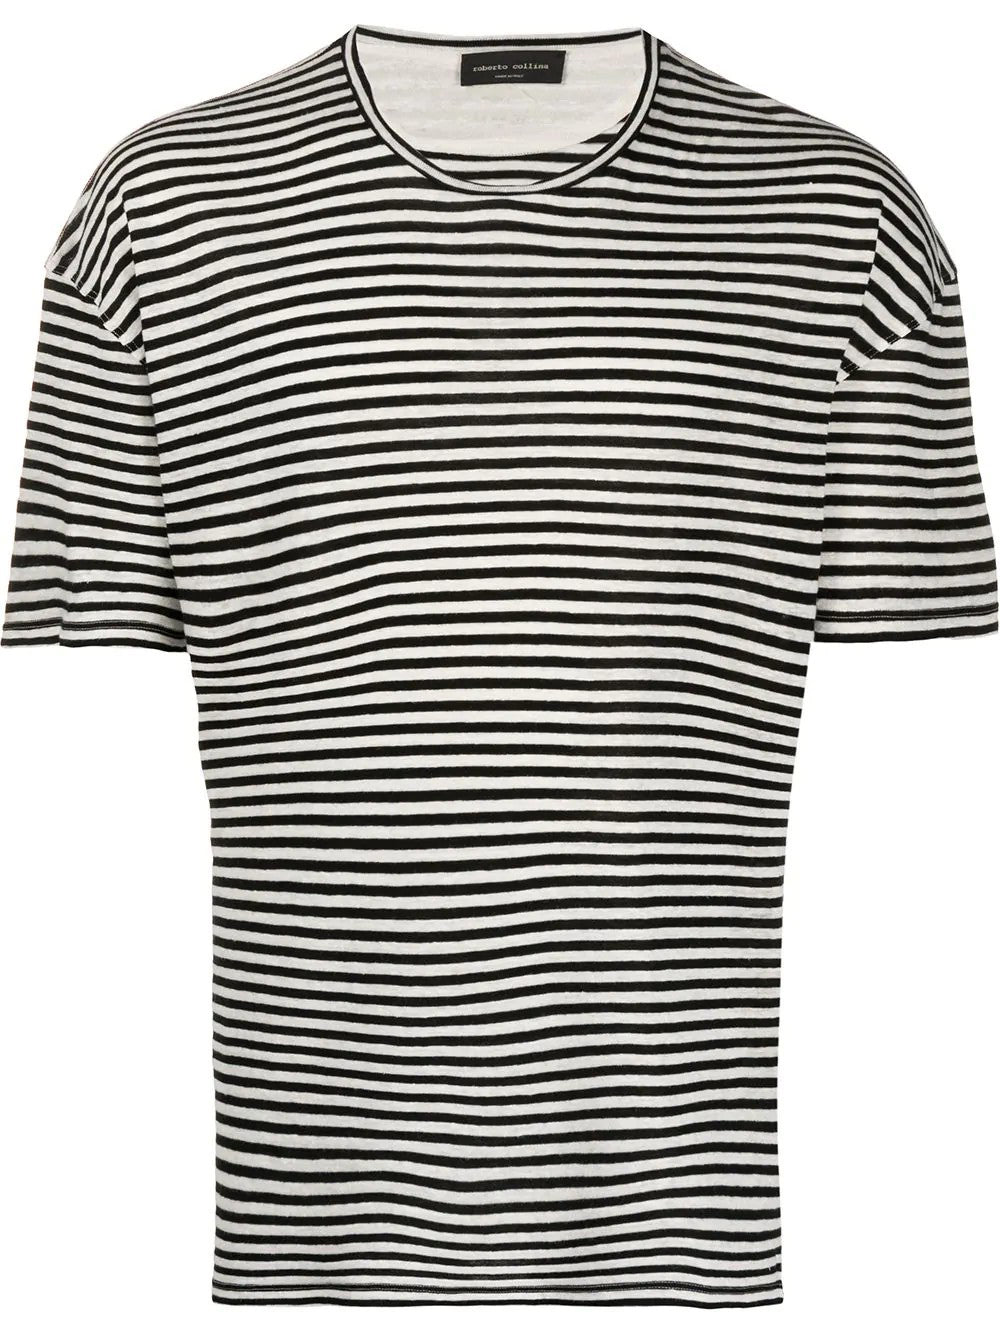 STRIPES TSHIRT